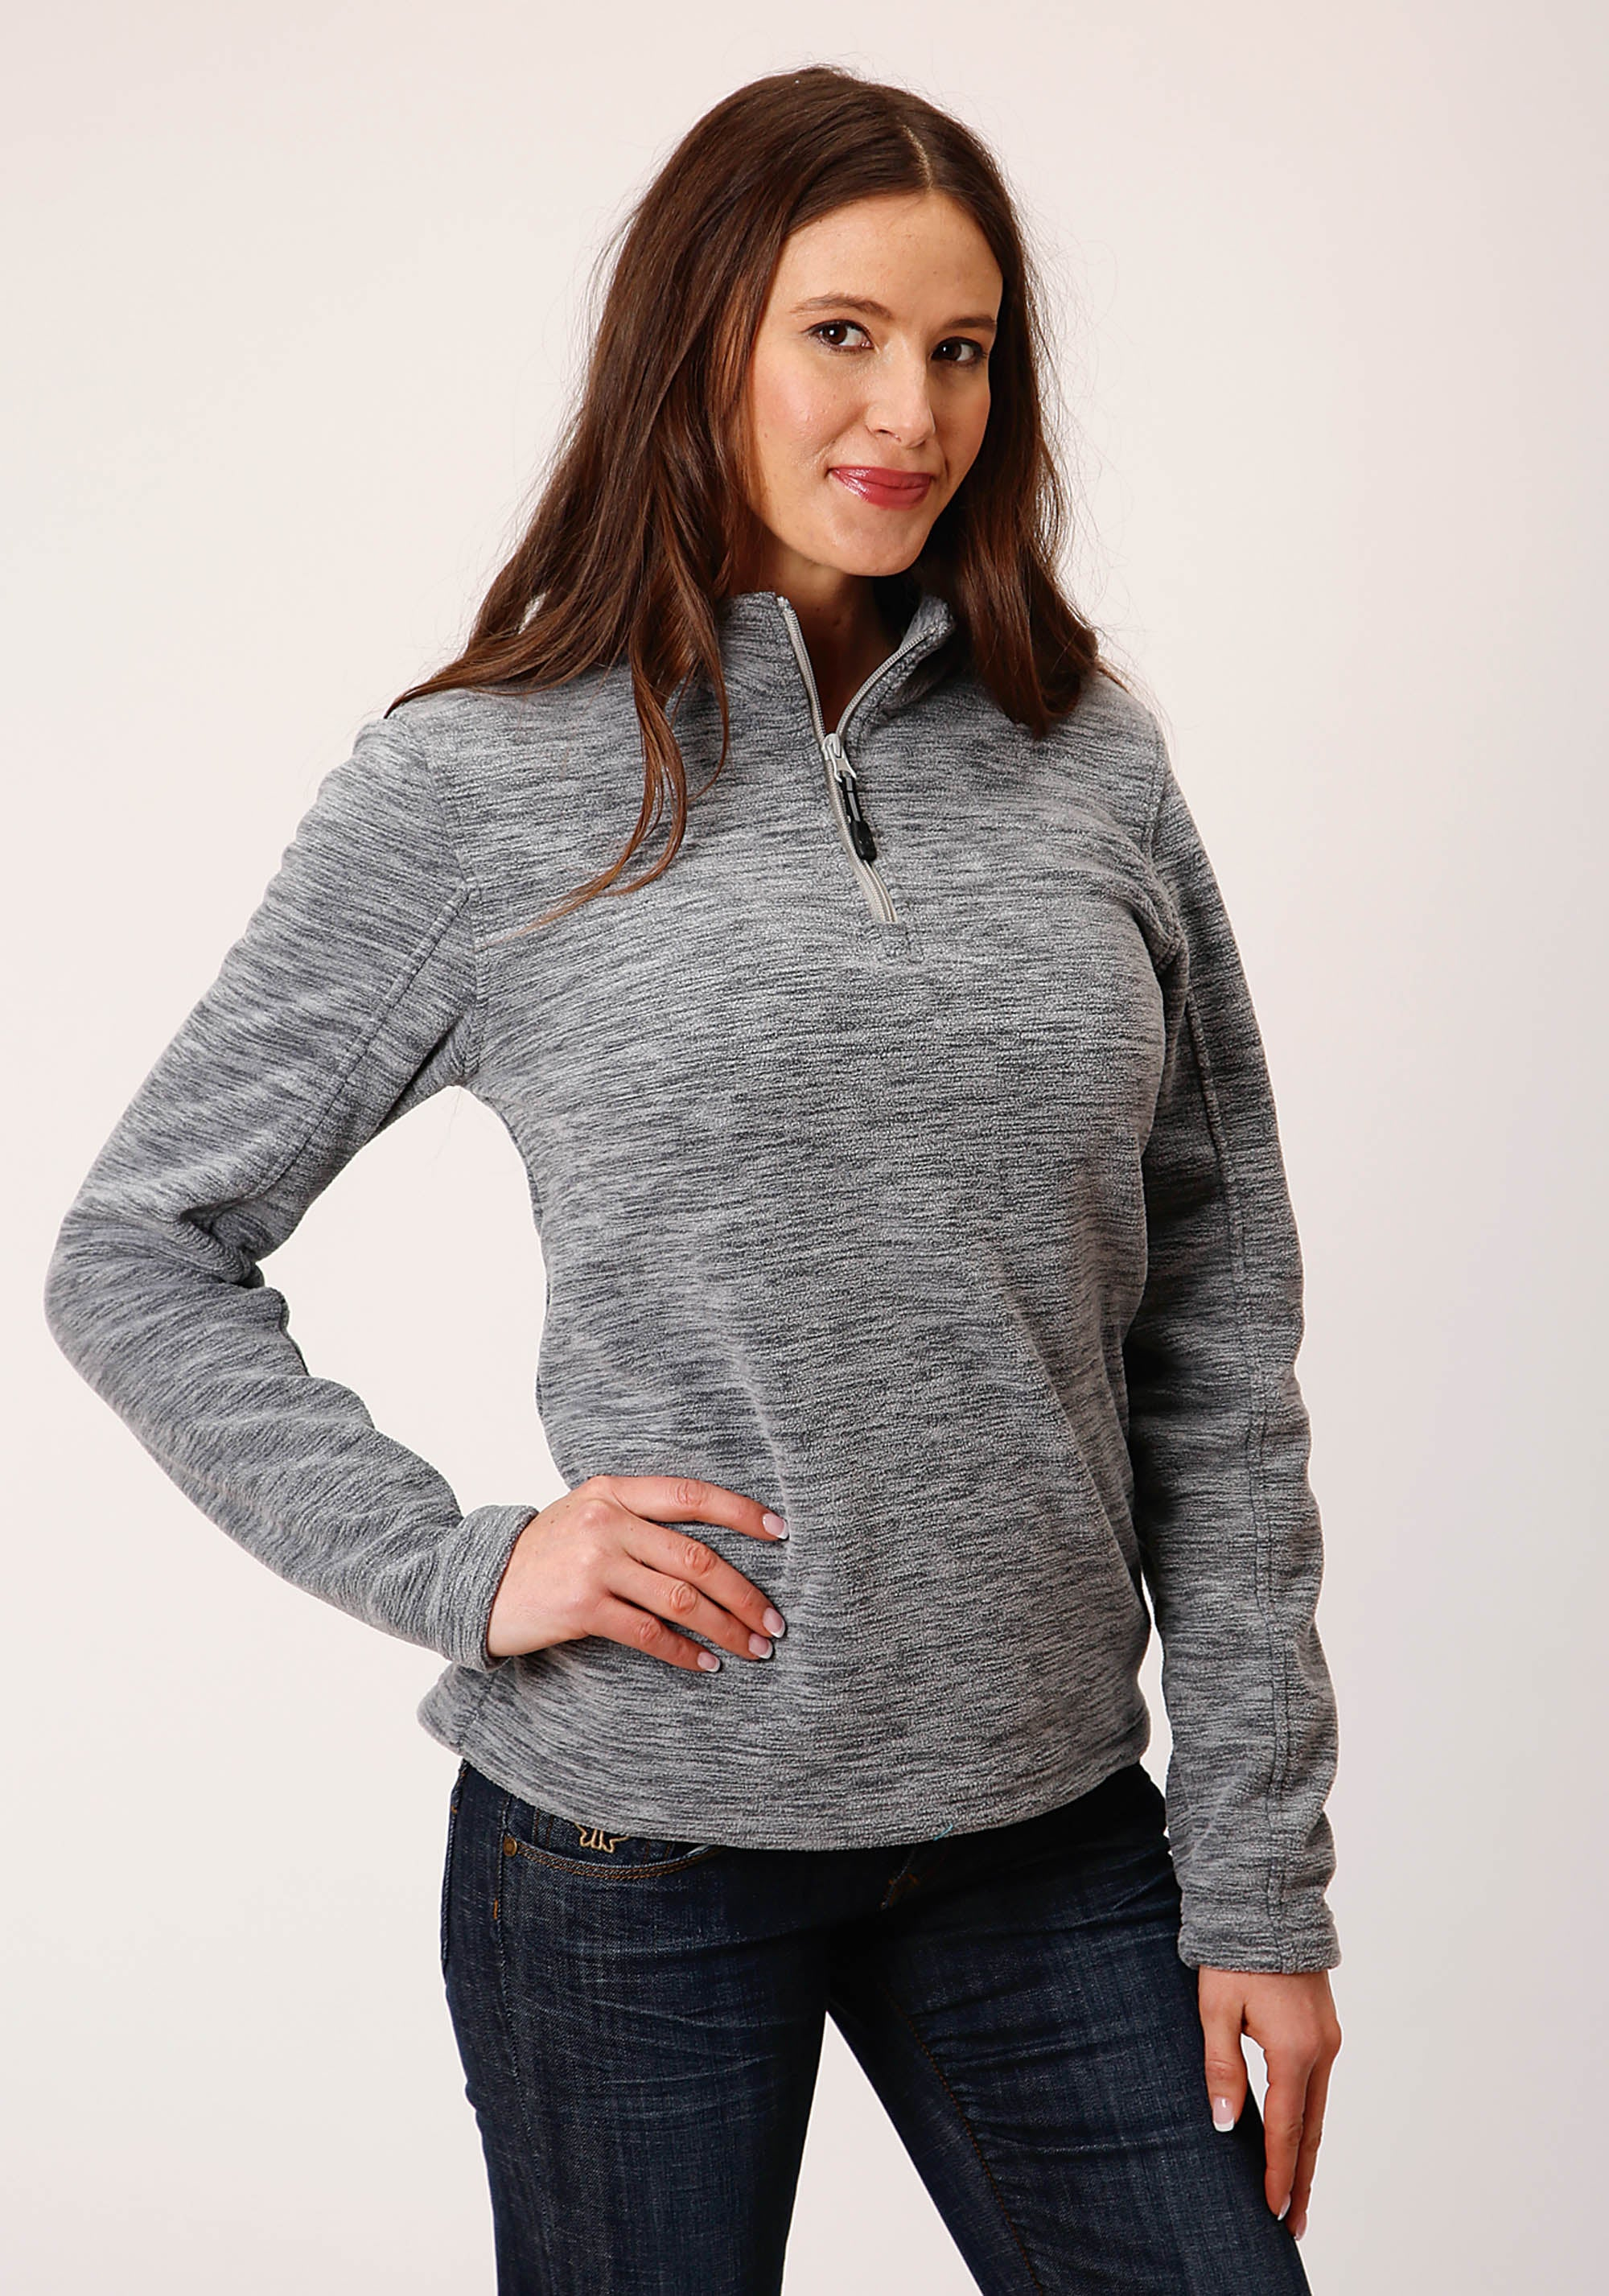 OUTERWEAR WOMENS GREY 00511 GREY FLEECE 3/4 SLV PULL OVER MICRO FLEECE